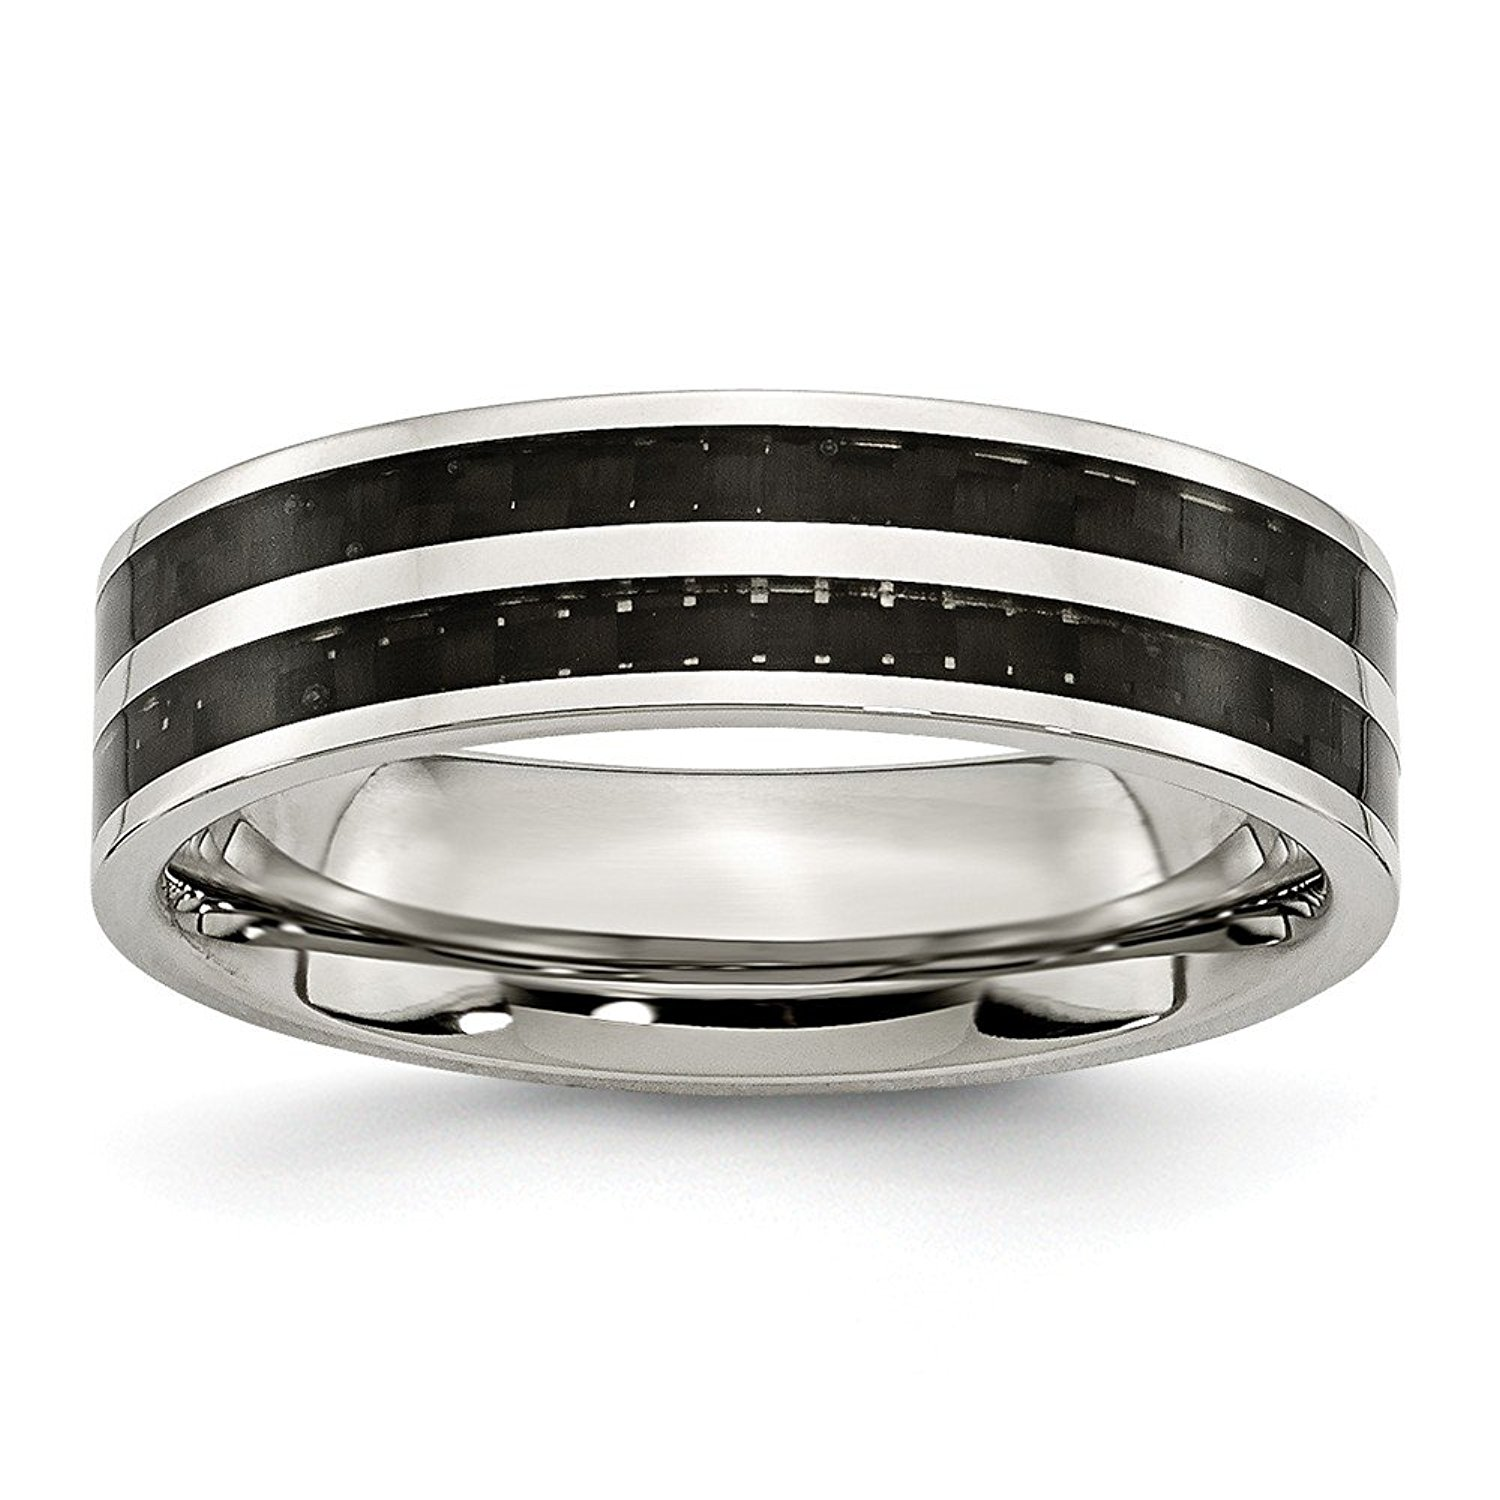 Perfect Jewelry Gift Stainless Steel 6mm Double Row Black Carbon Fiber Inlay Polished Band